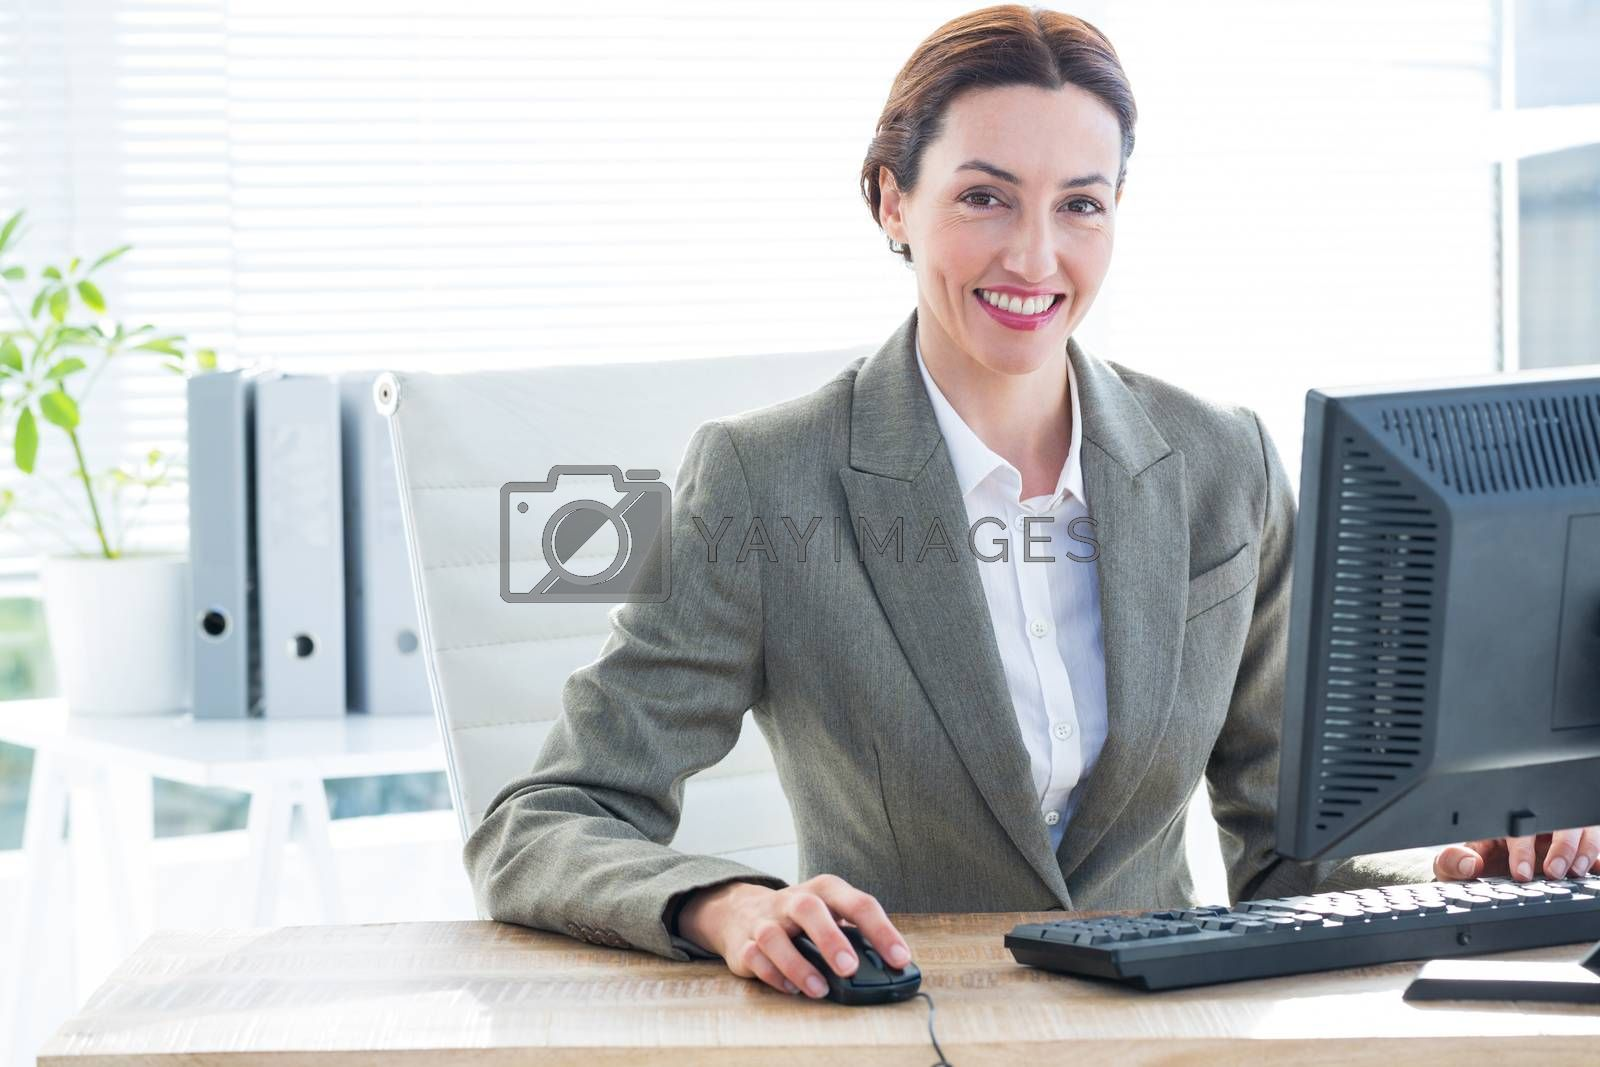 Royalty free image of Businesswoman using computer and smiling at camera  by Wavebreakmedia